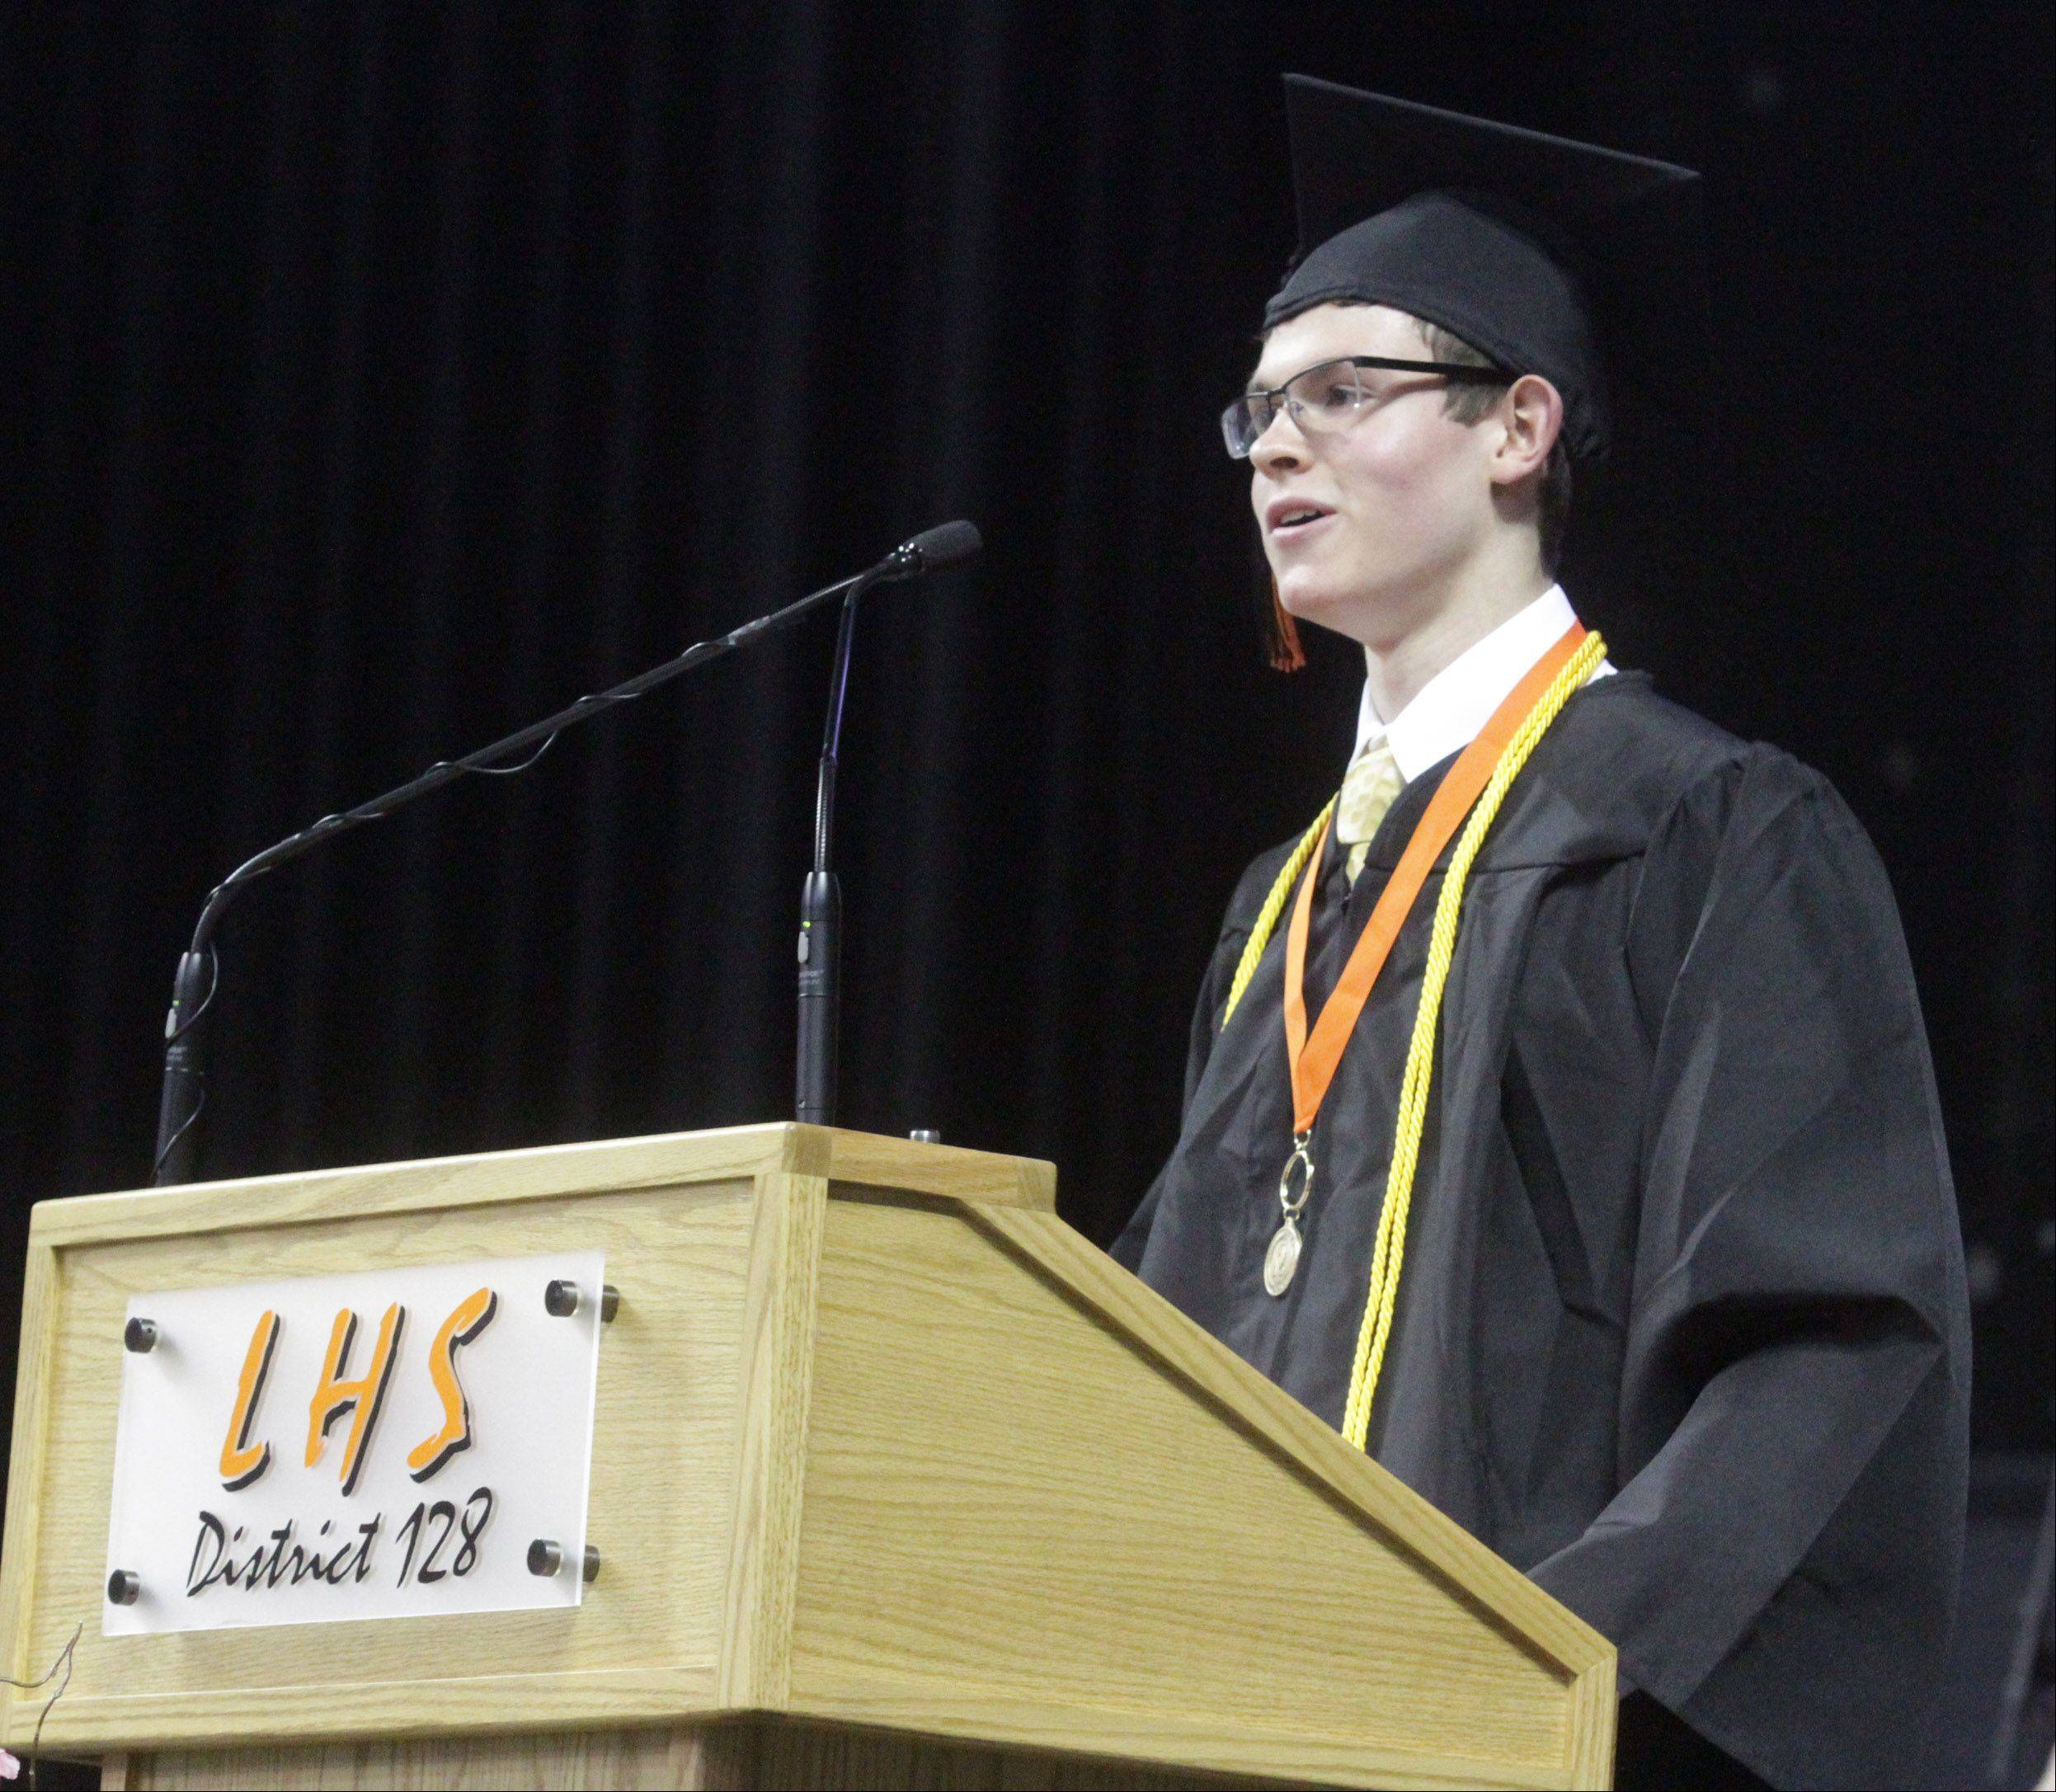 Libertyville High School graduation on Friday, June 7 at the Sears Centre in Hoffman Estates.